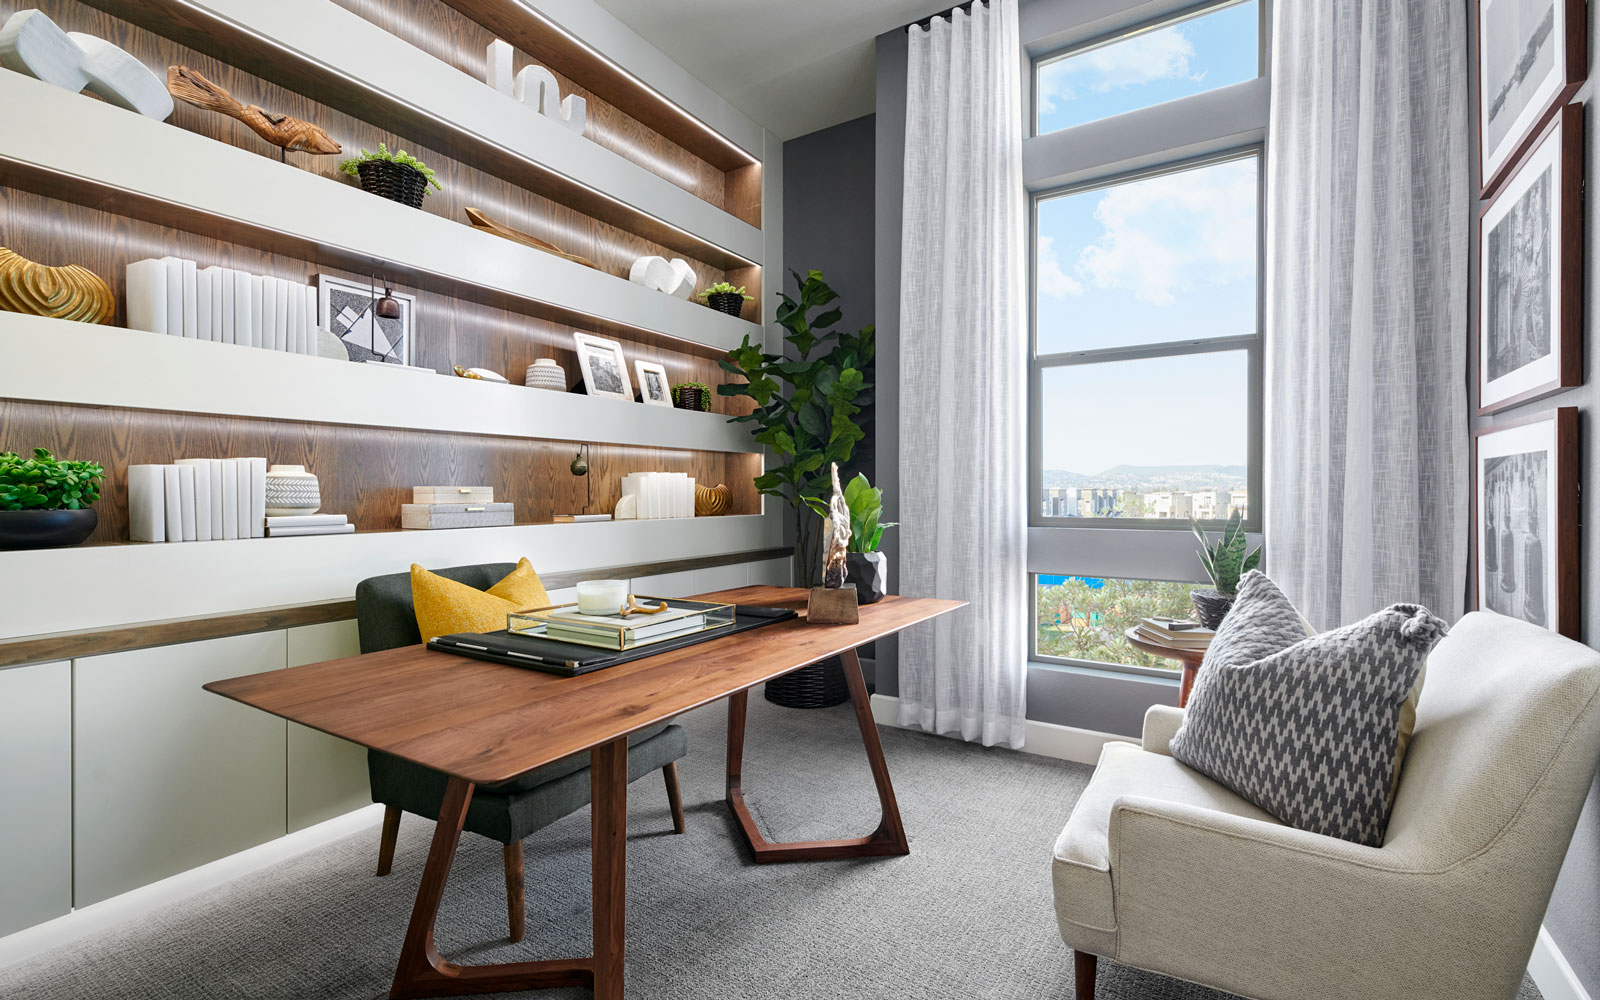 Bedroom 2 | Residence 2 | Hyde Park at Boulevard in Dublin, CA | Brookfield Residential